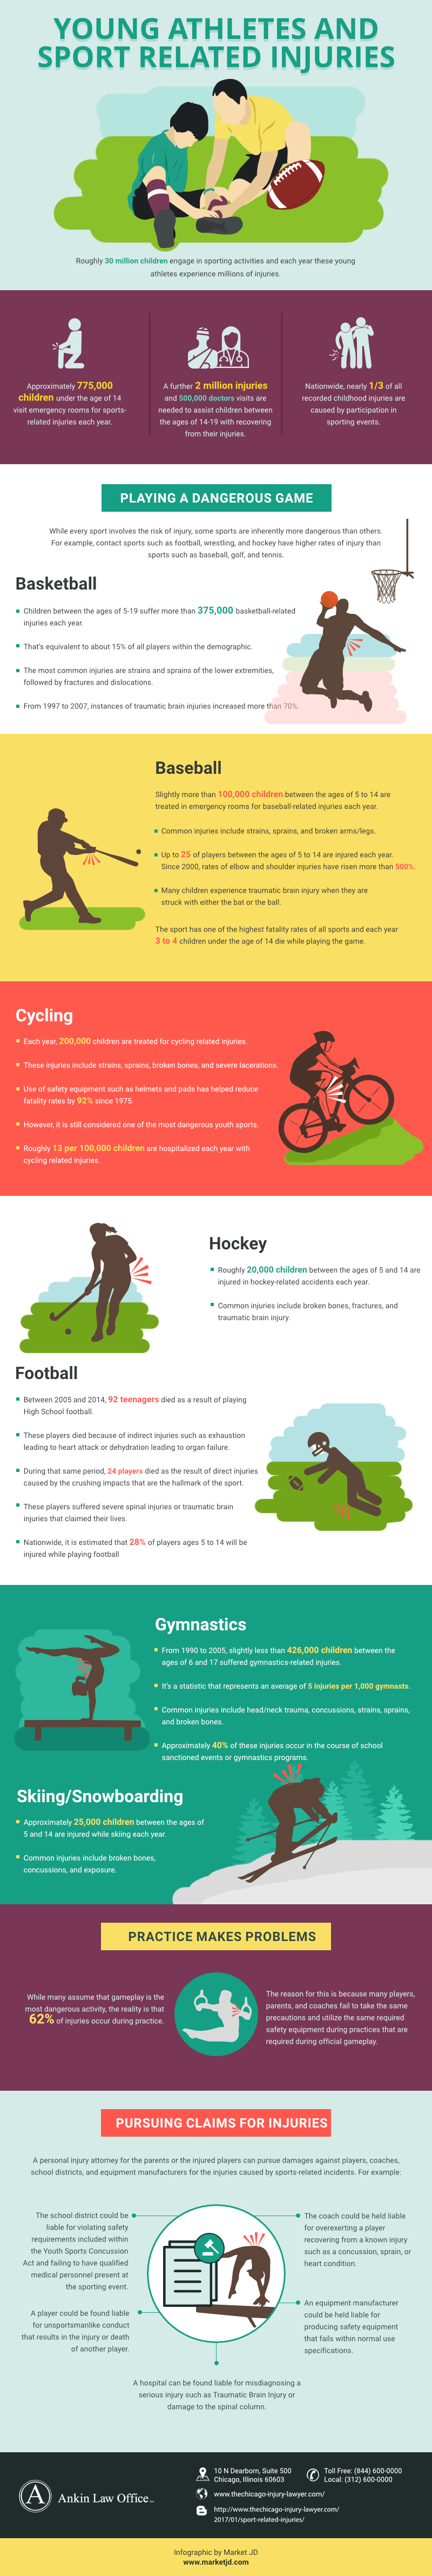 infographic_Sport-Related-Injuries